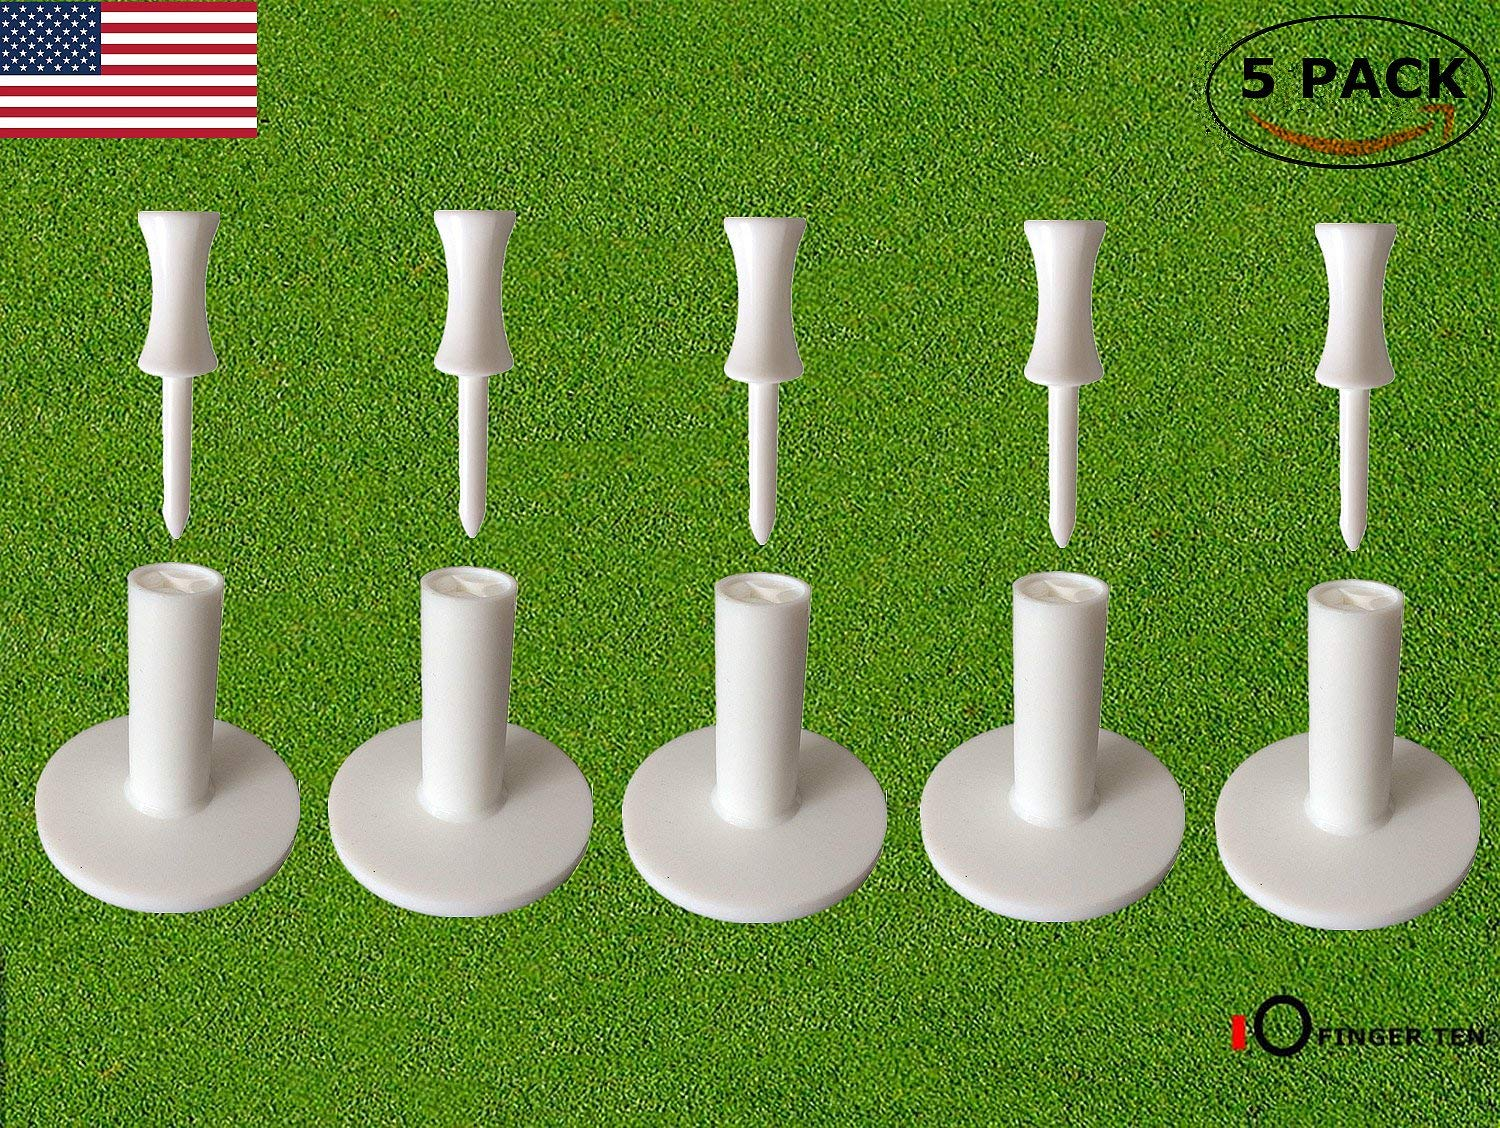 Golf Rubber Tee Driving Range Value 5 Pack for Indoor Outdoor Practice Mat, Tee Adaptor Size 1.5'' 2.0'' with Free 6pcs Castle Tees